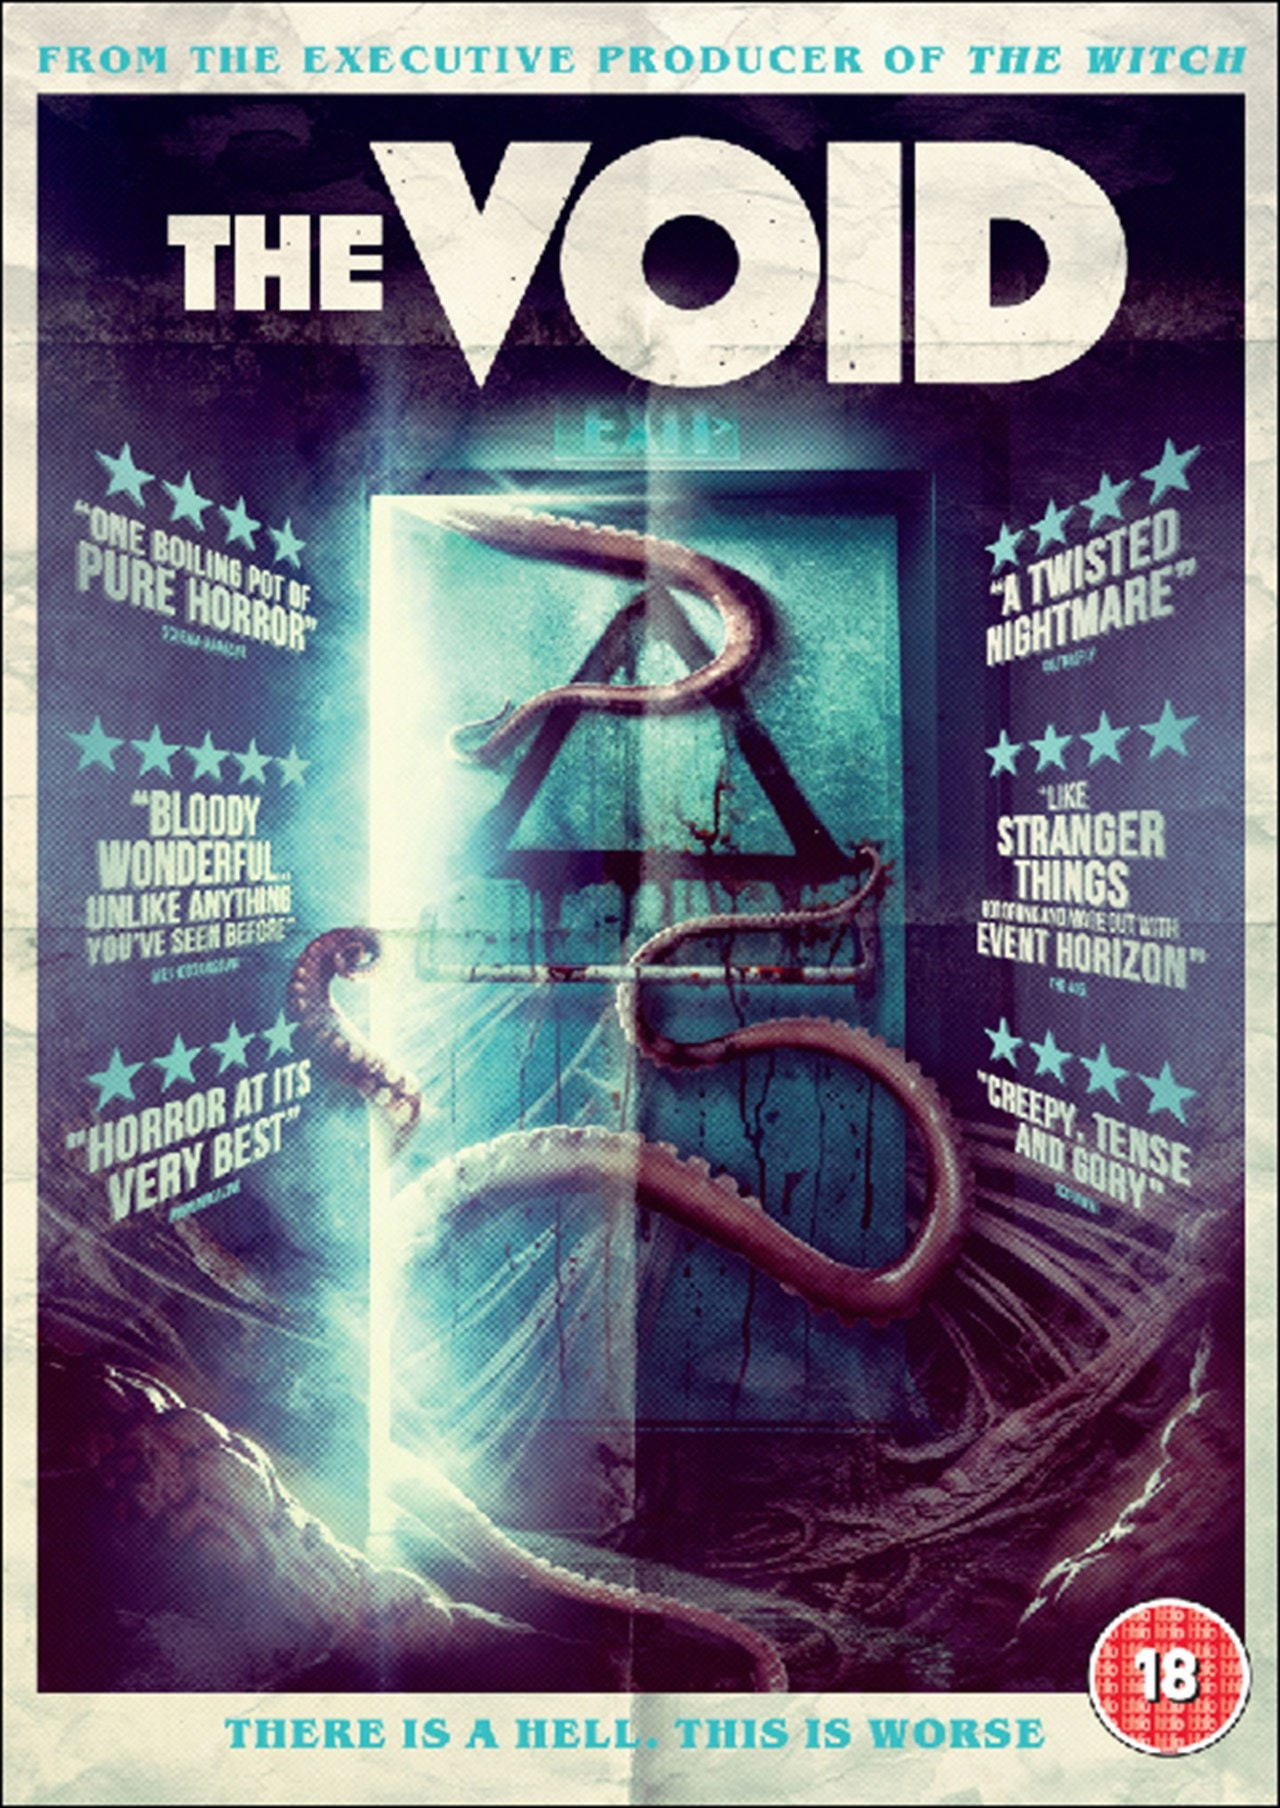 The Void - 1